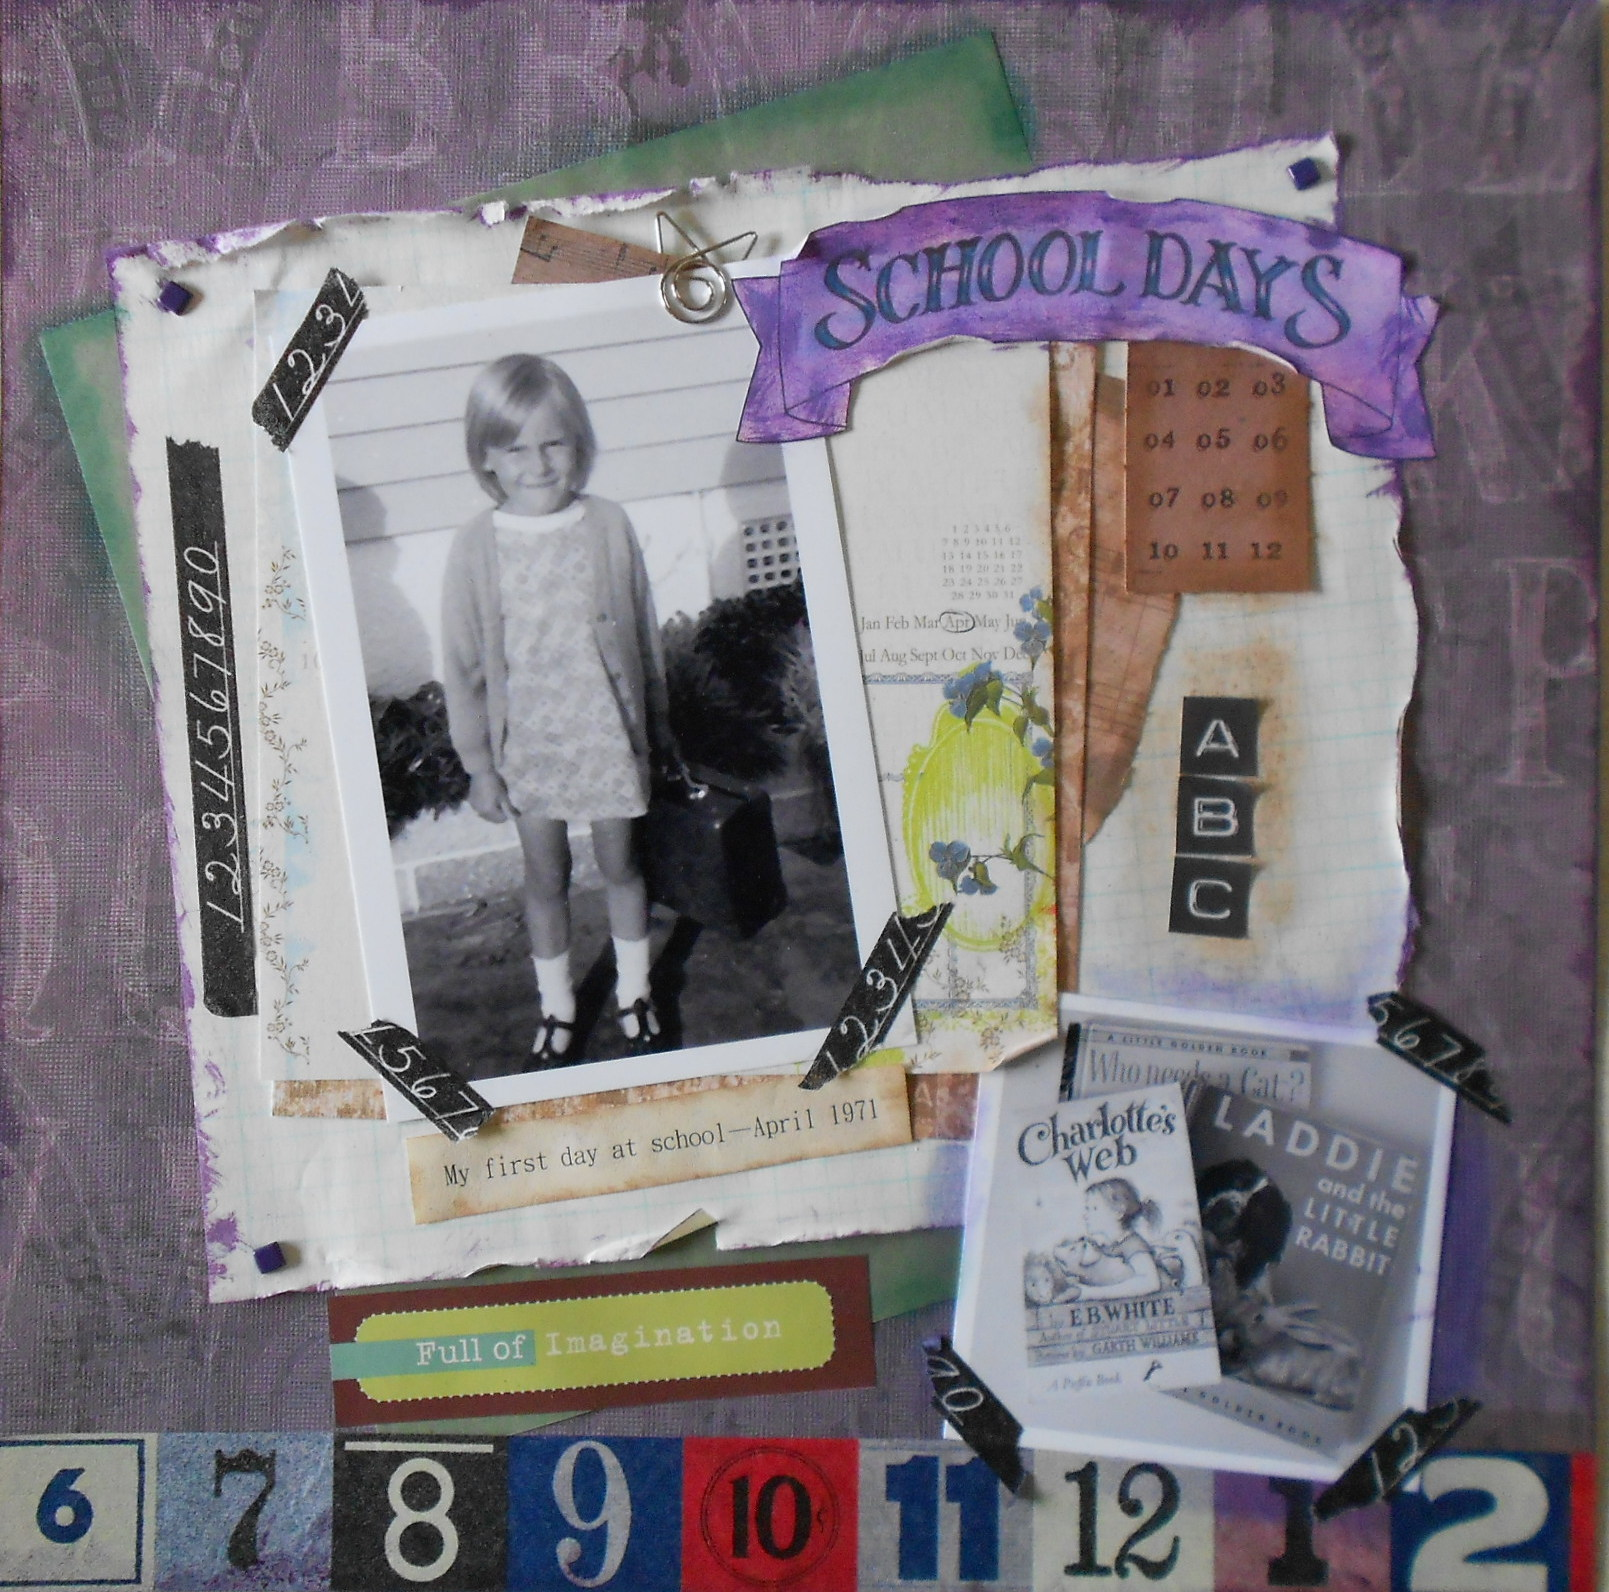 Scrapbook paper england theme -  Of My Favourite Early Childhood Books Keeping The Black And White Theme And Added A Few Embellishments Such As Purple Brads And A Fancy Paper Clip